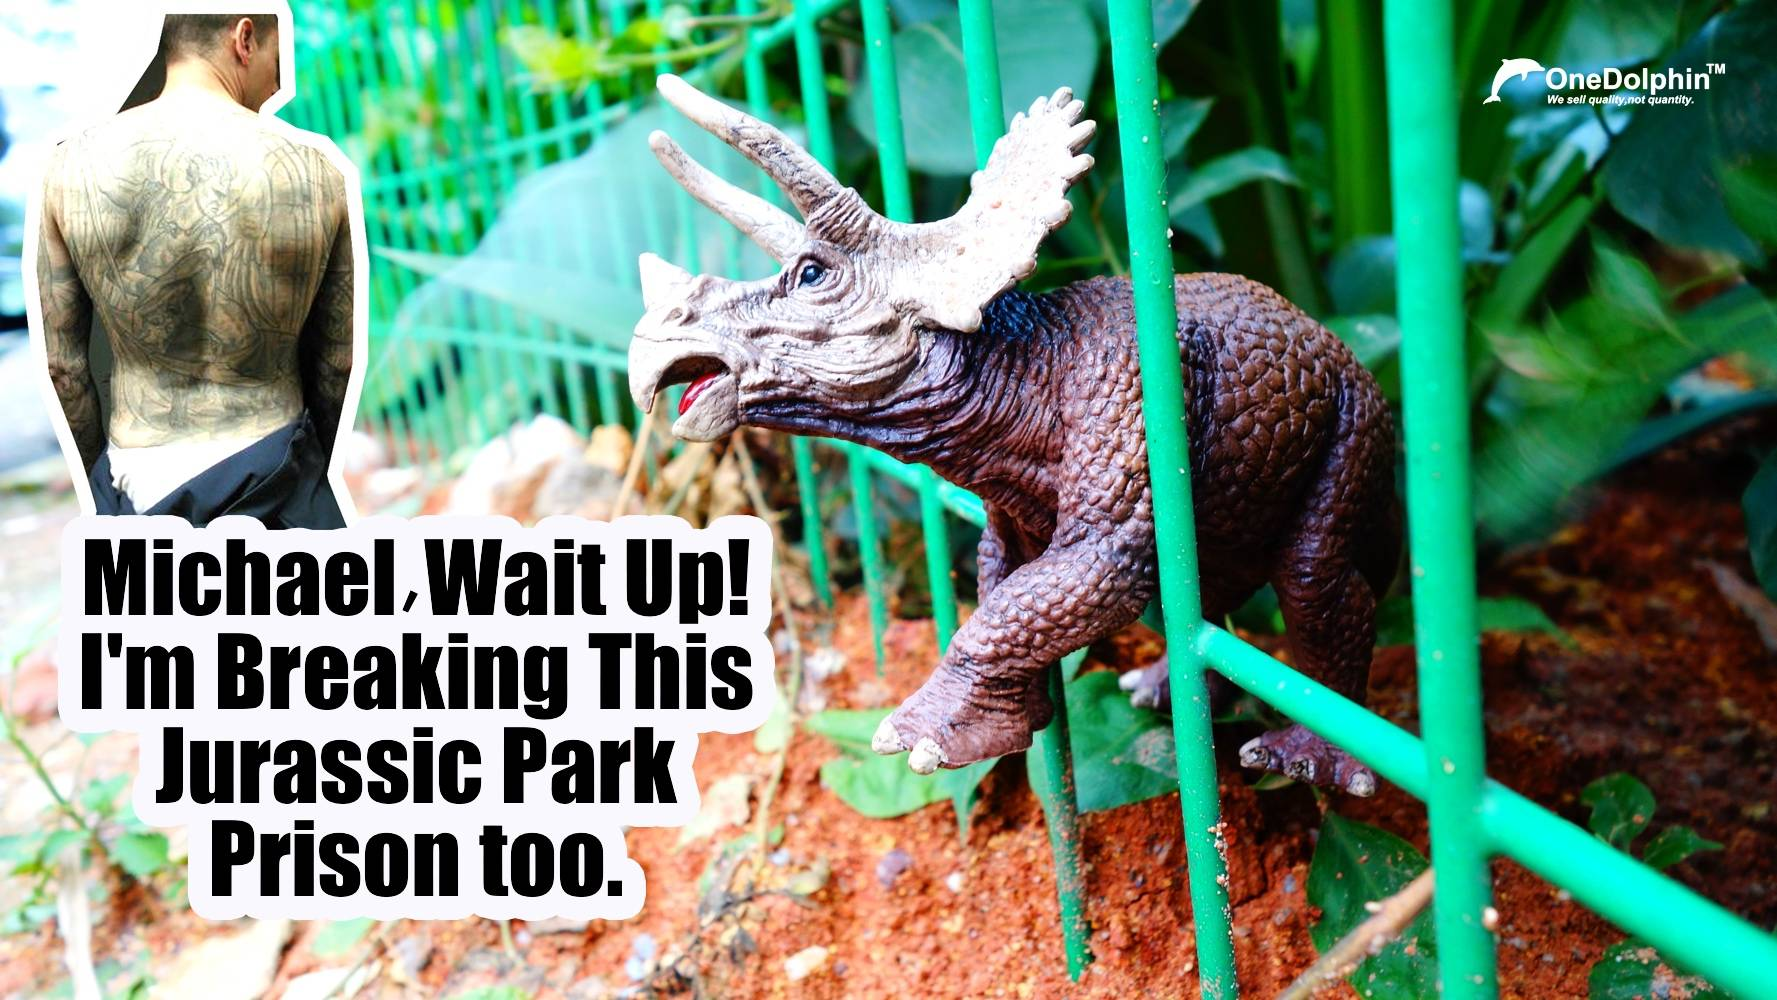 Triceratops:Michael,wait up!I'm breaking this jurassic park prison too.